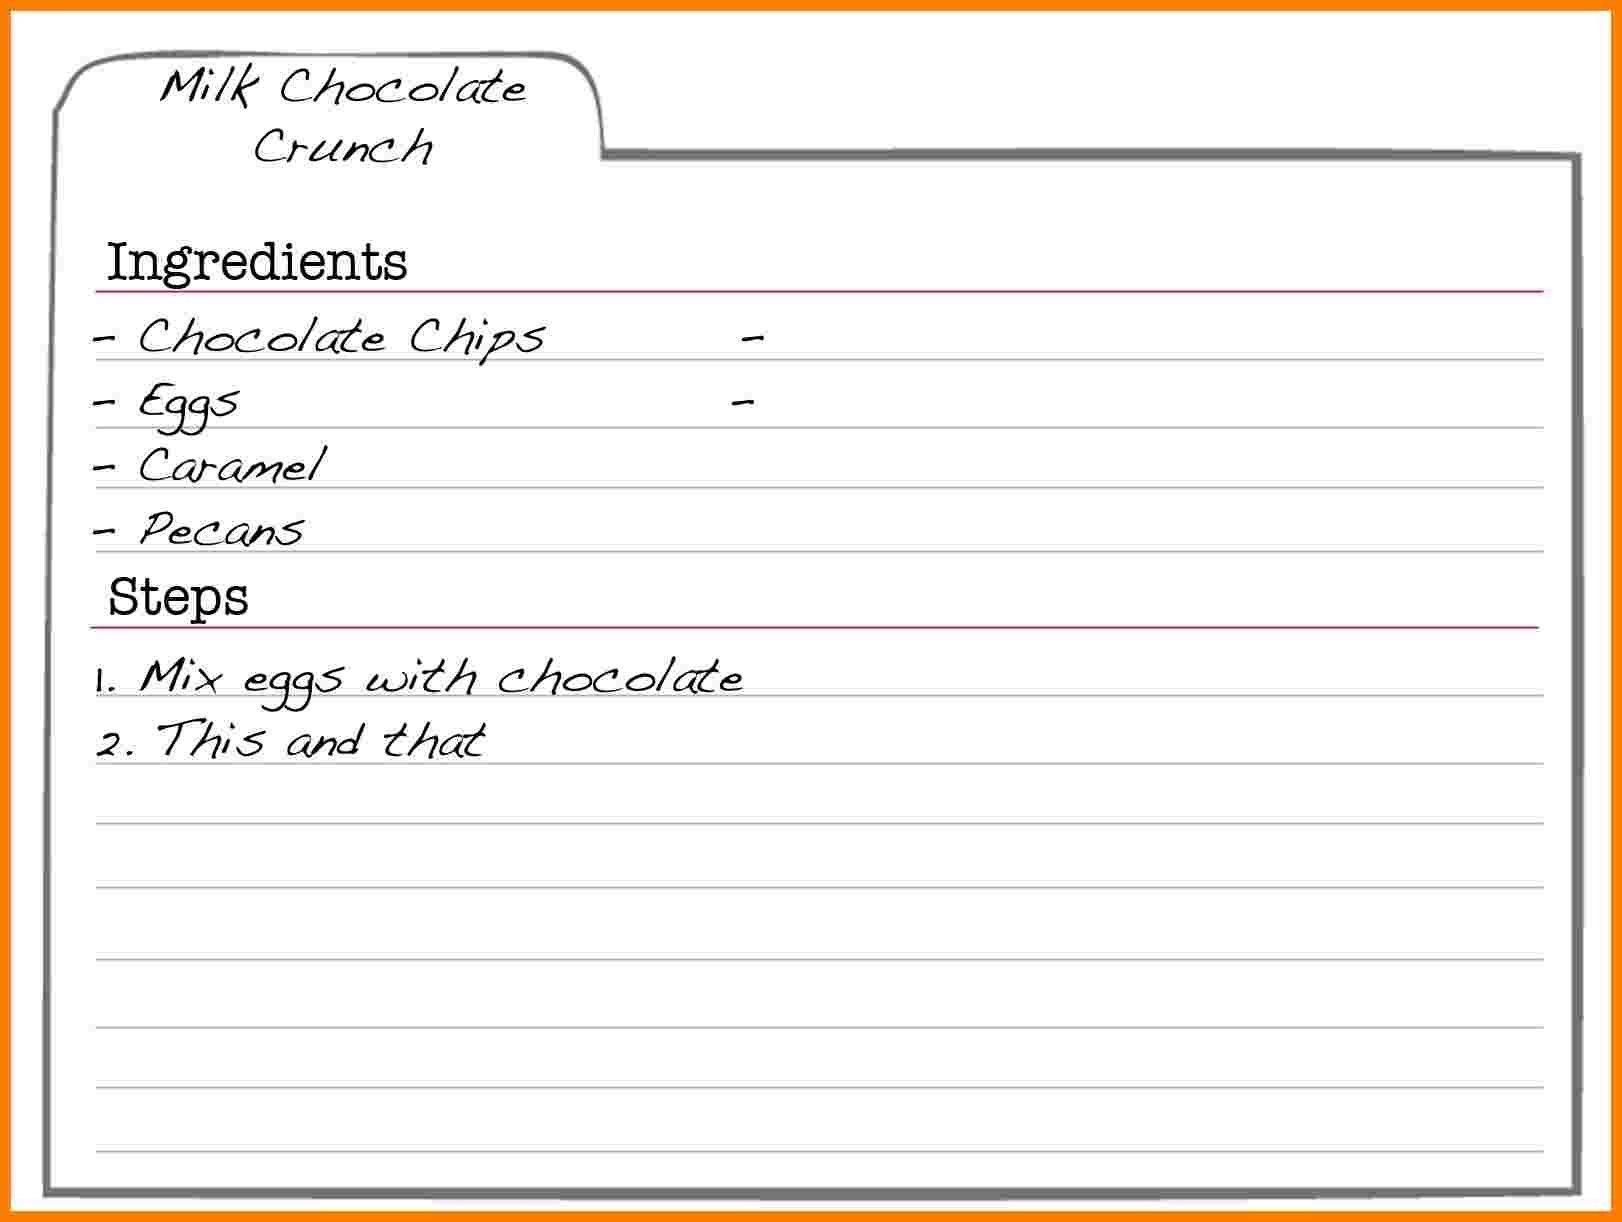 Free Editable Recipe Card Templates For Microsoft Word Ledger With Free Recipe Card Templates For Microsoft Word